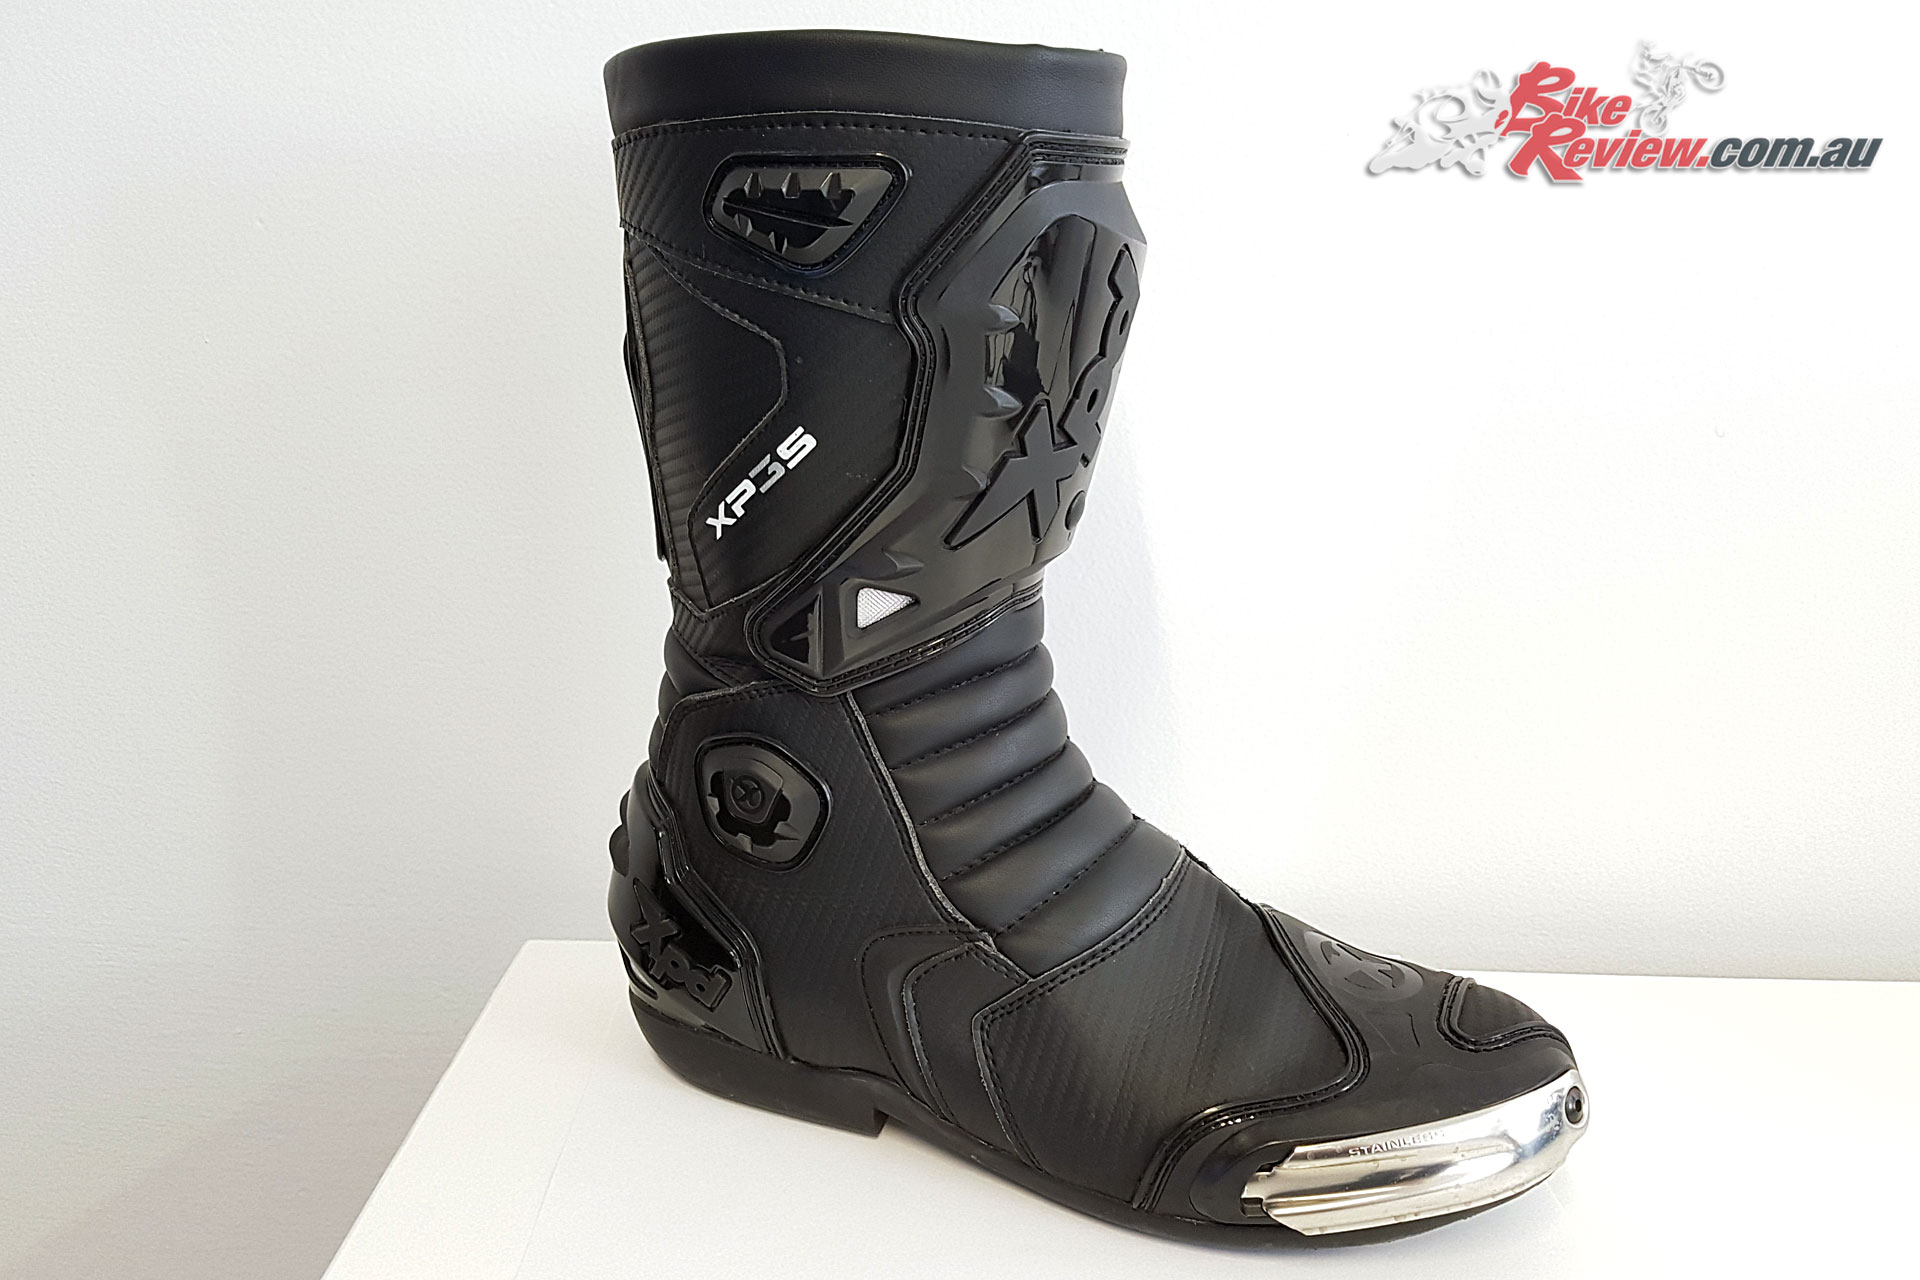 Xpd are a subsidiary of Spidi and offer a range of great boot options